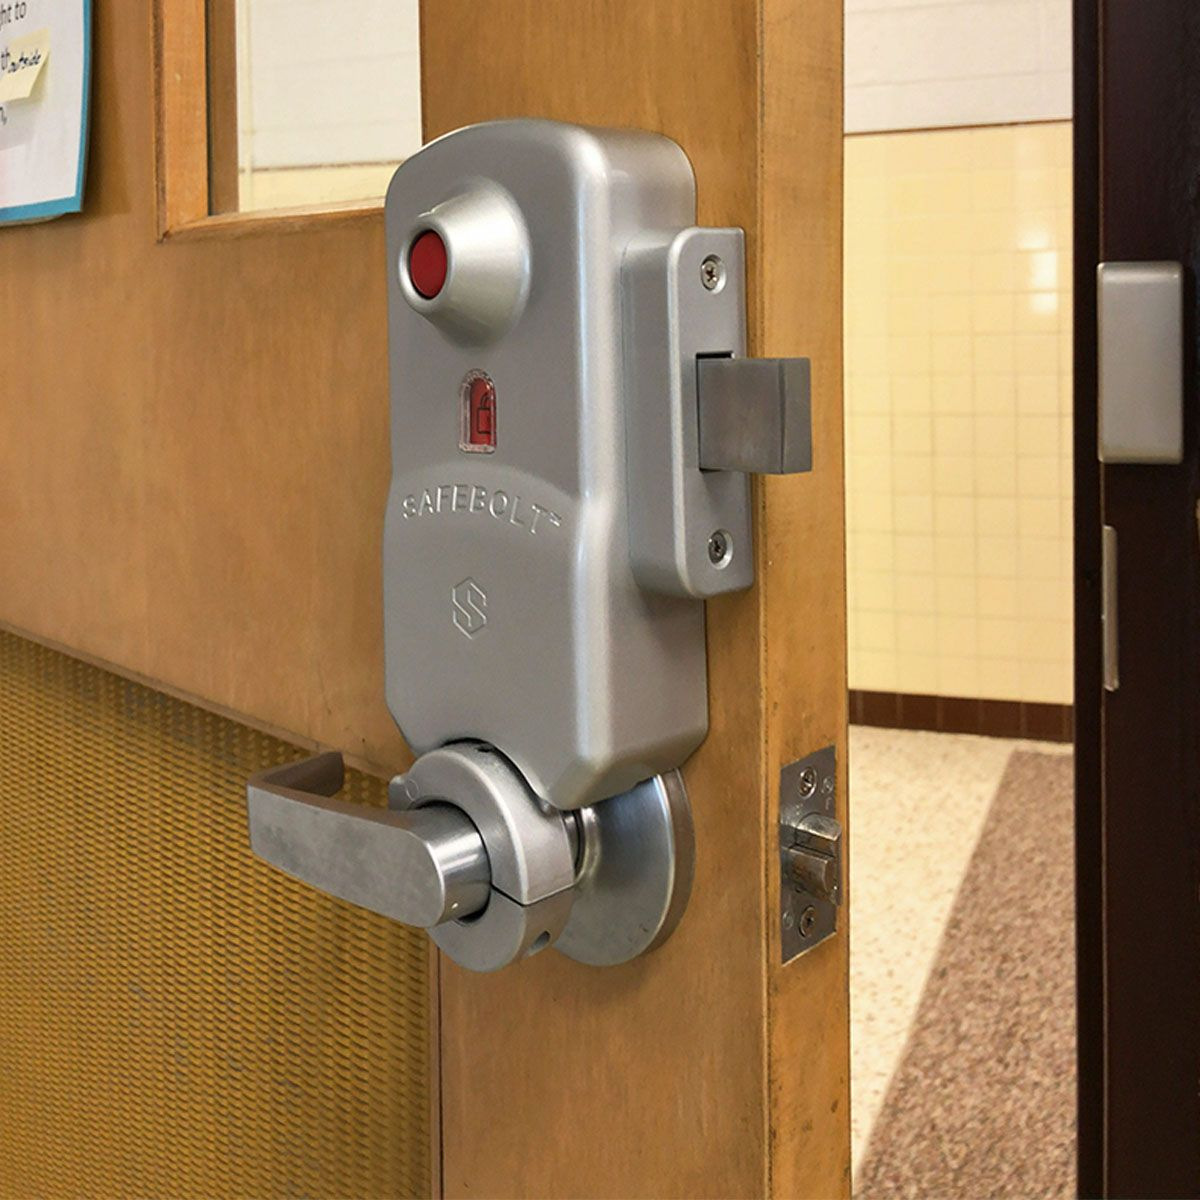 Safebolt School Lockdown Hardware Is The Fastest Way To Barricade A Classroom Door While Maintaining 100 Code Compliance An Door Handles Coding Installation